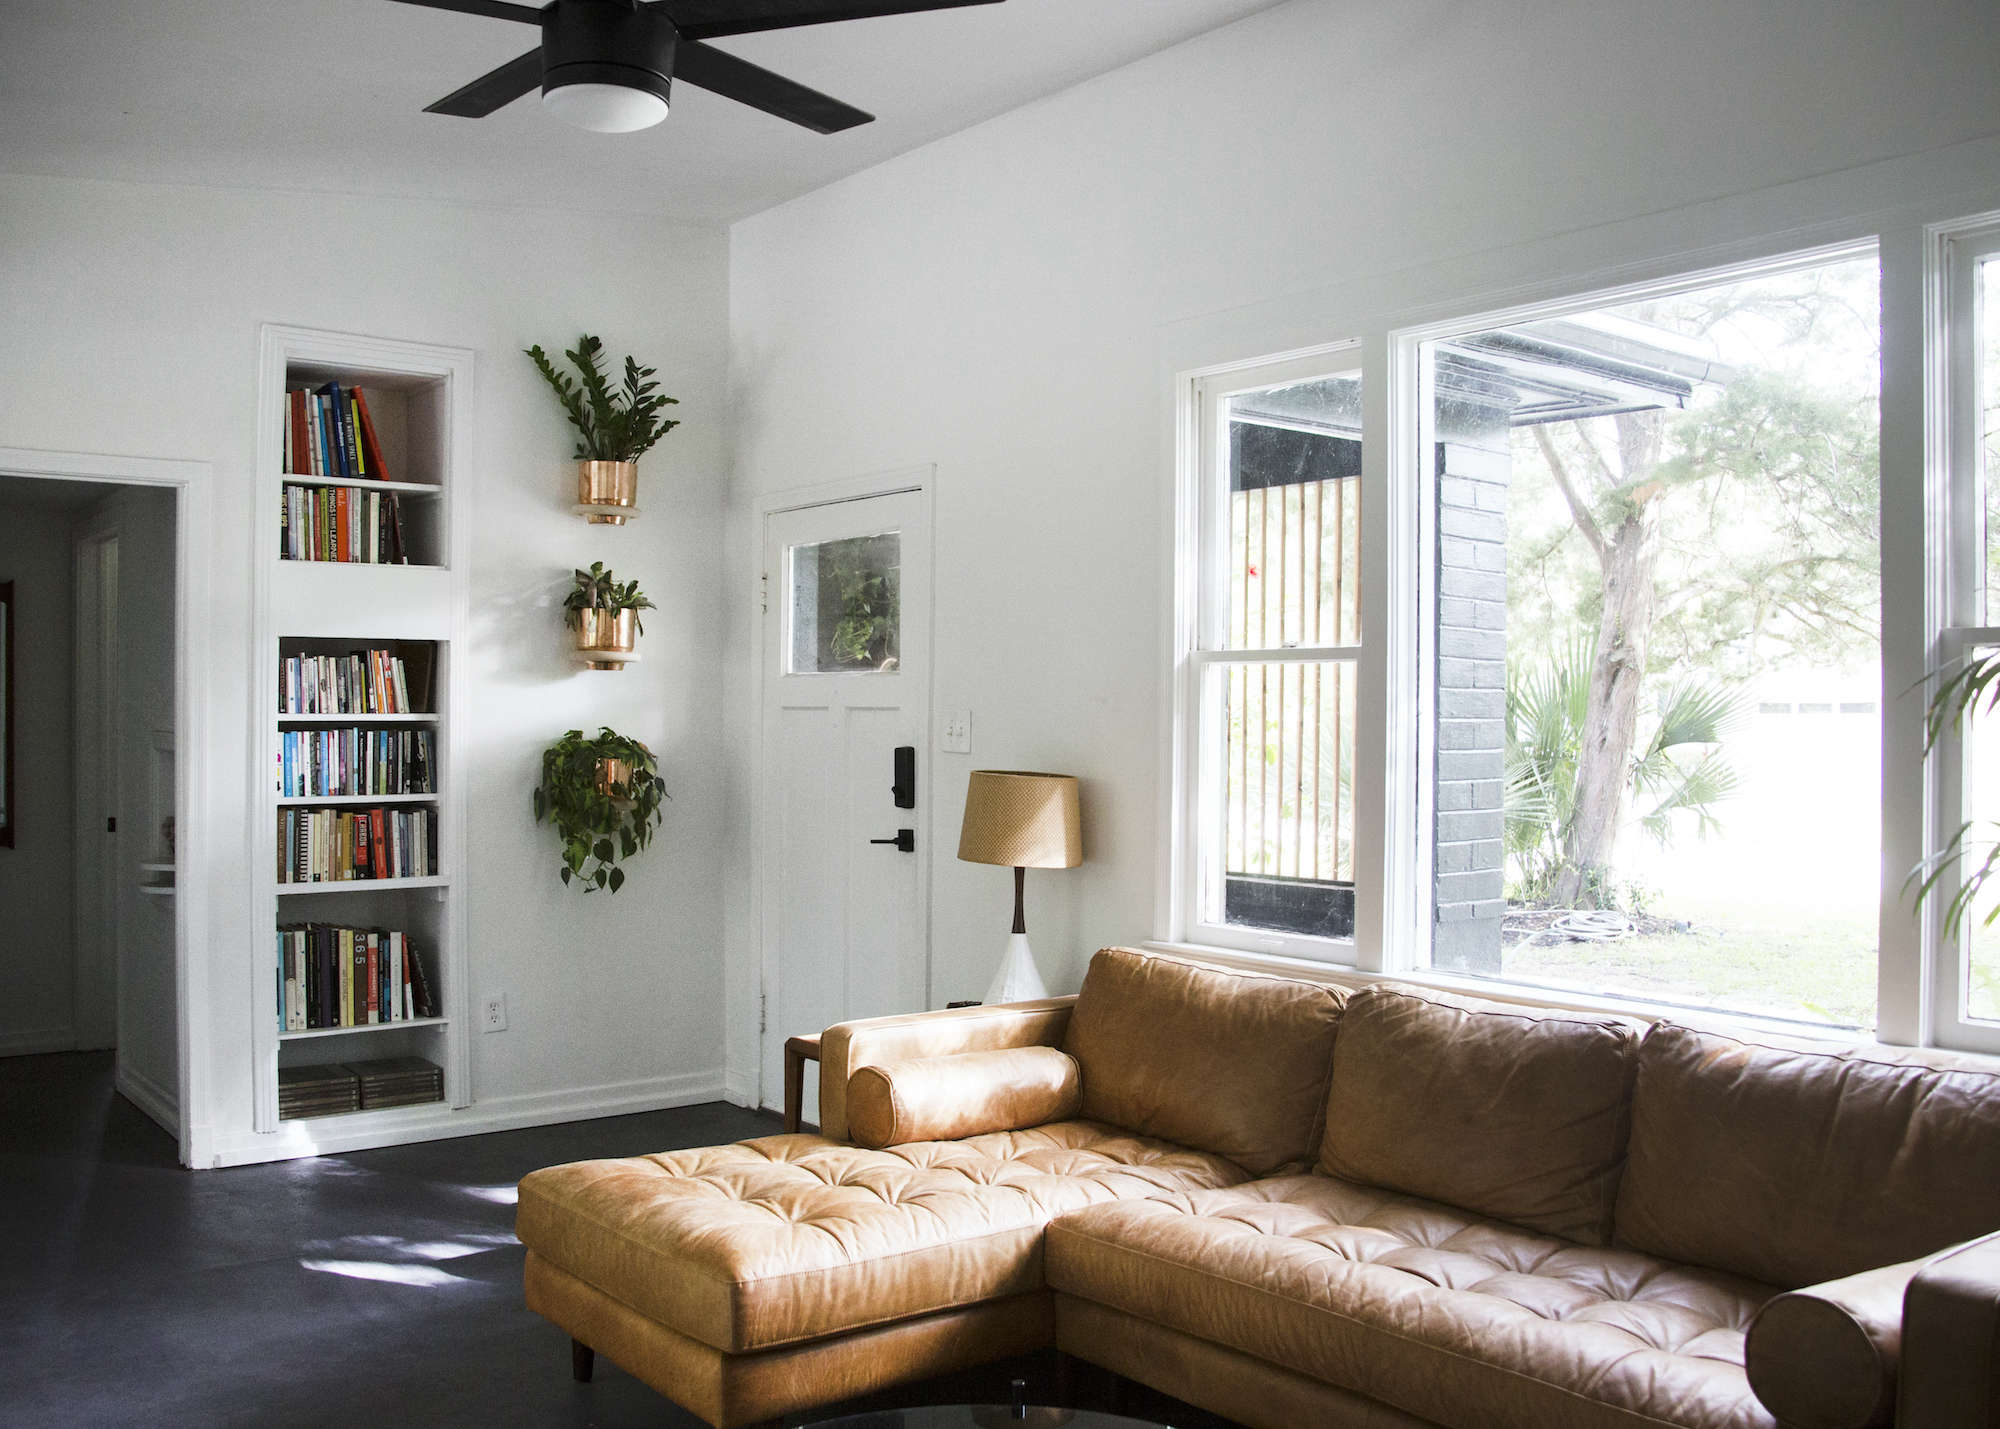 Before & After: A Design Duo\'s Whole-House Overhaul for $15,000 ...